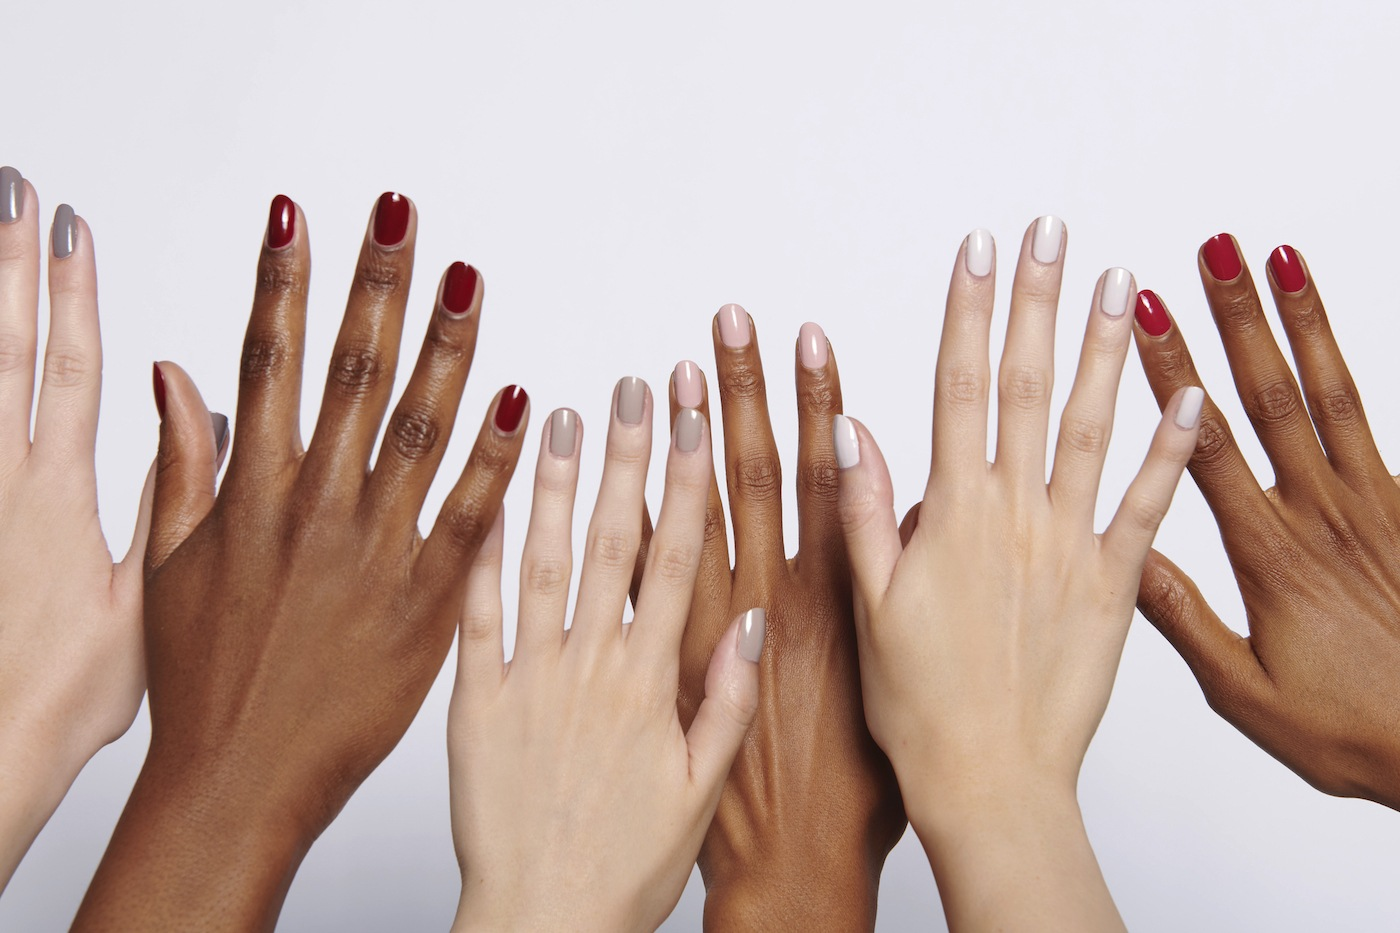 Thumbnail for Cancel your manicure: These at-home nail tips will keep your polish on longer than gels